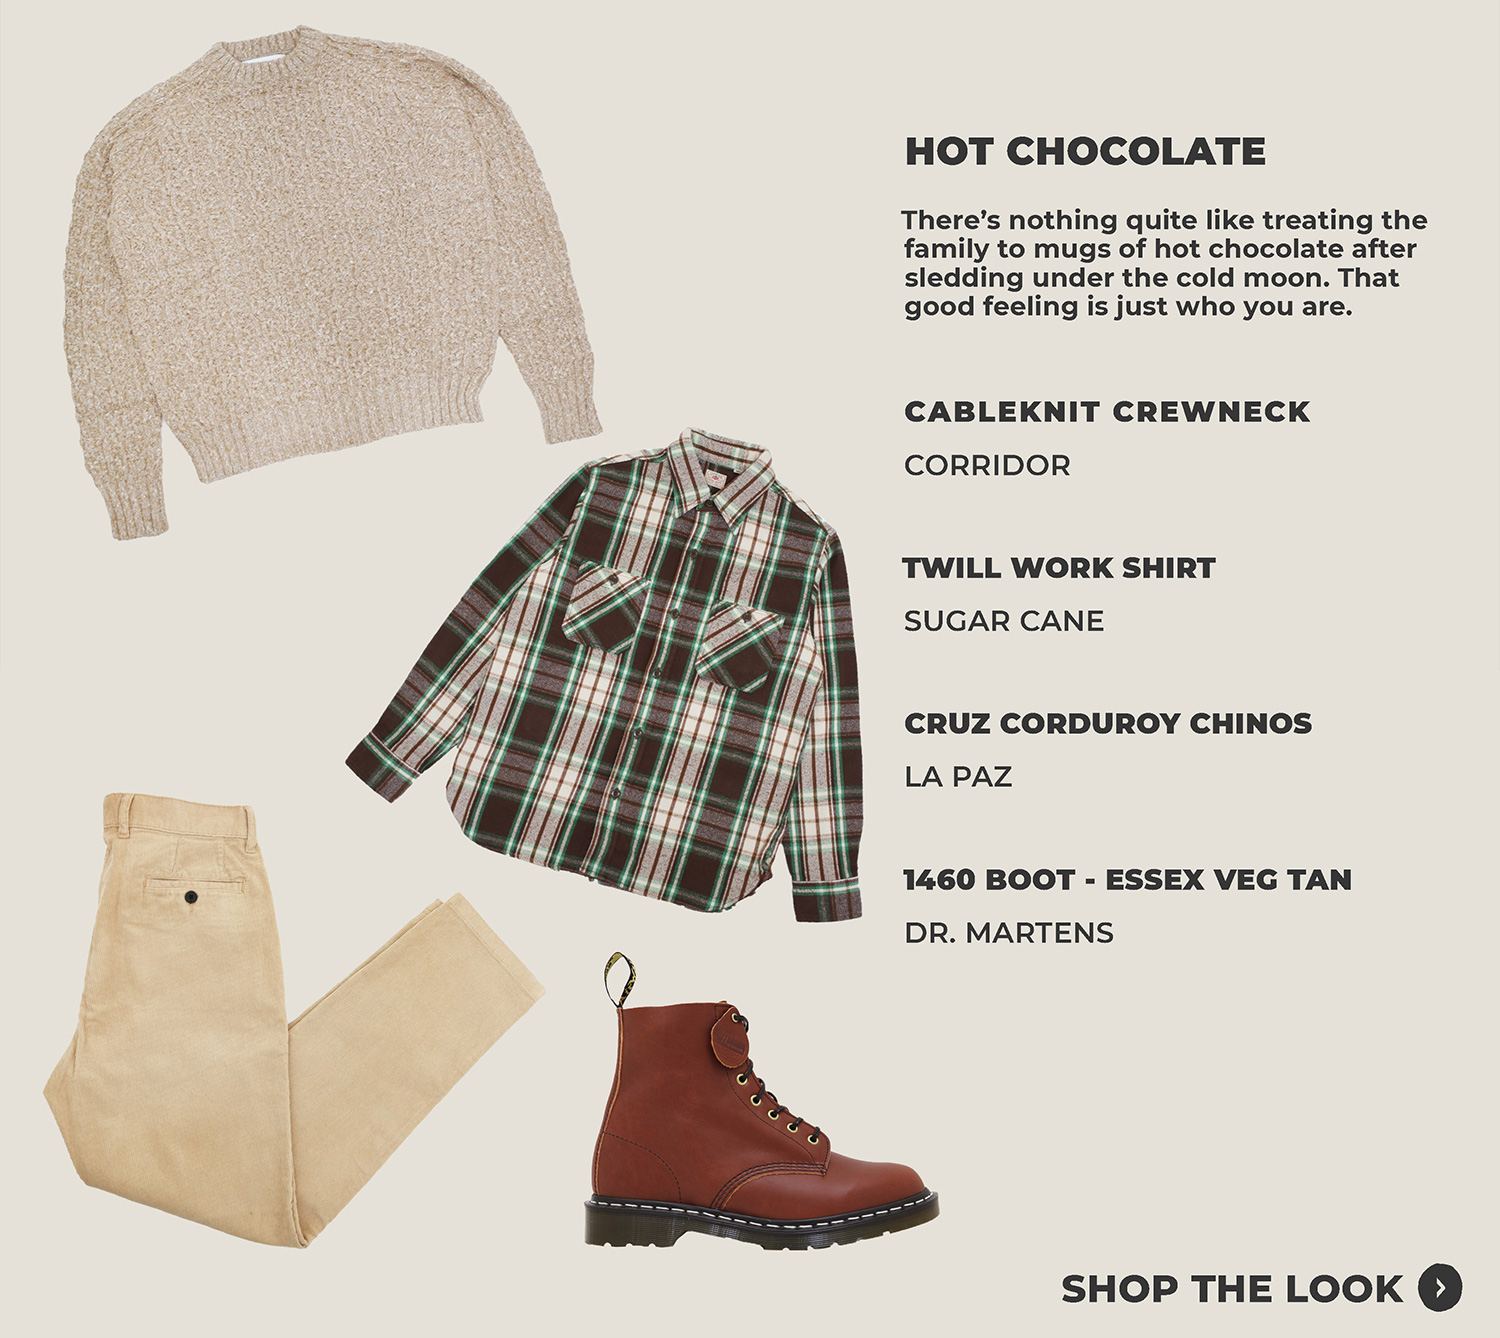 look three featuring corridor nyc cableknit crewneck, sugar cane workshirt, la paz corduroy chinos and dr. martens made in england 1460 boots